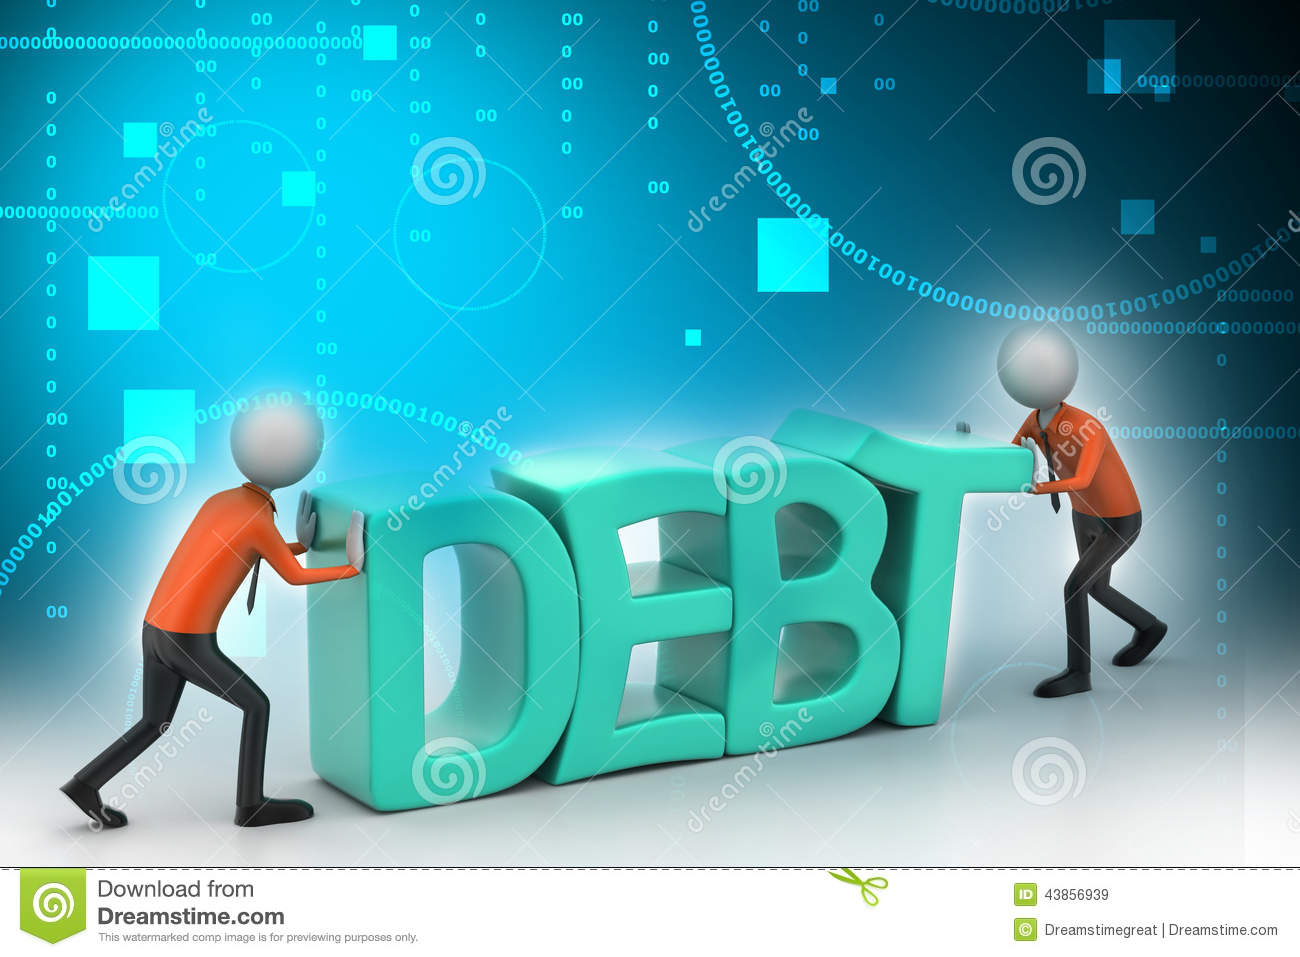 how to avoid debt problems